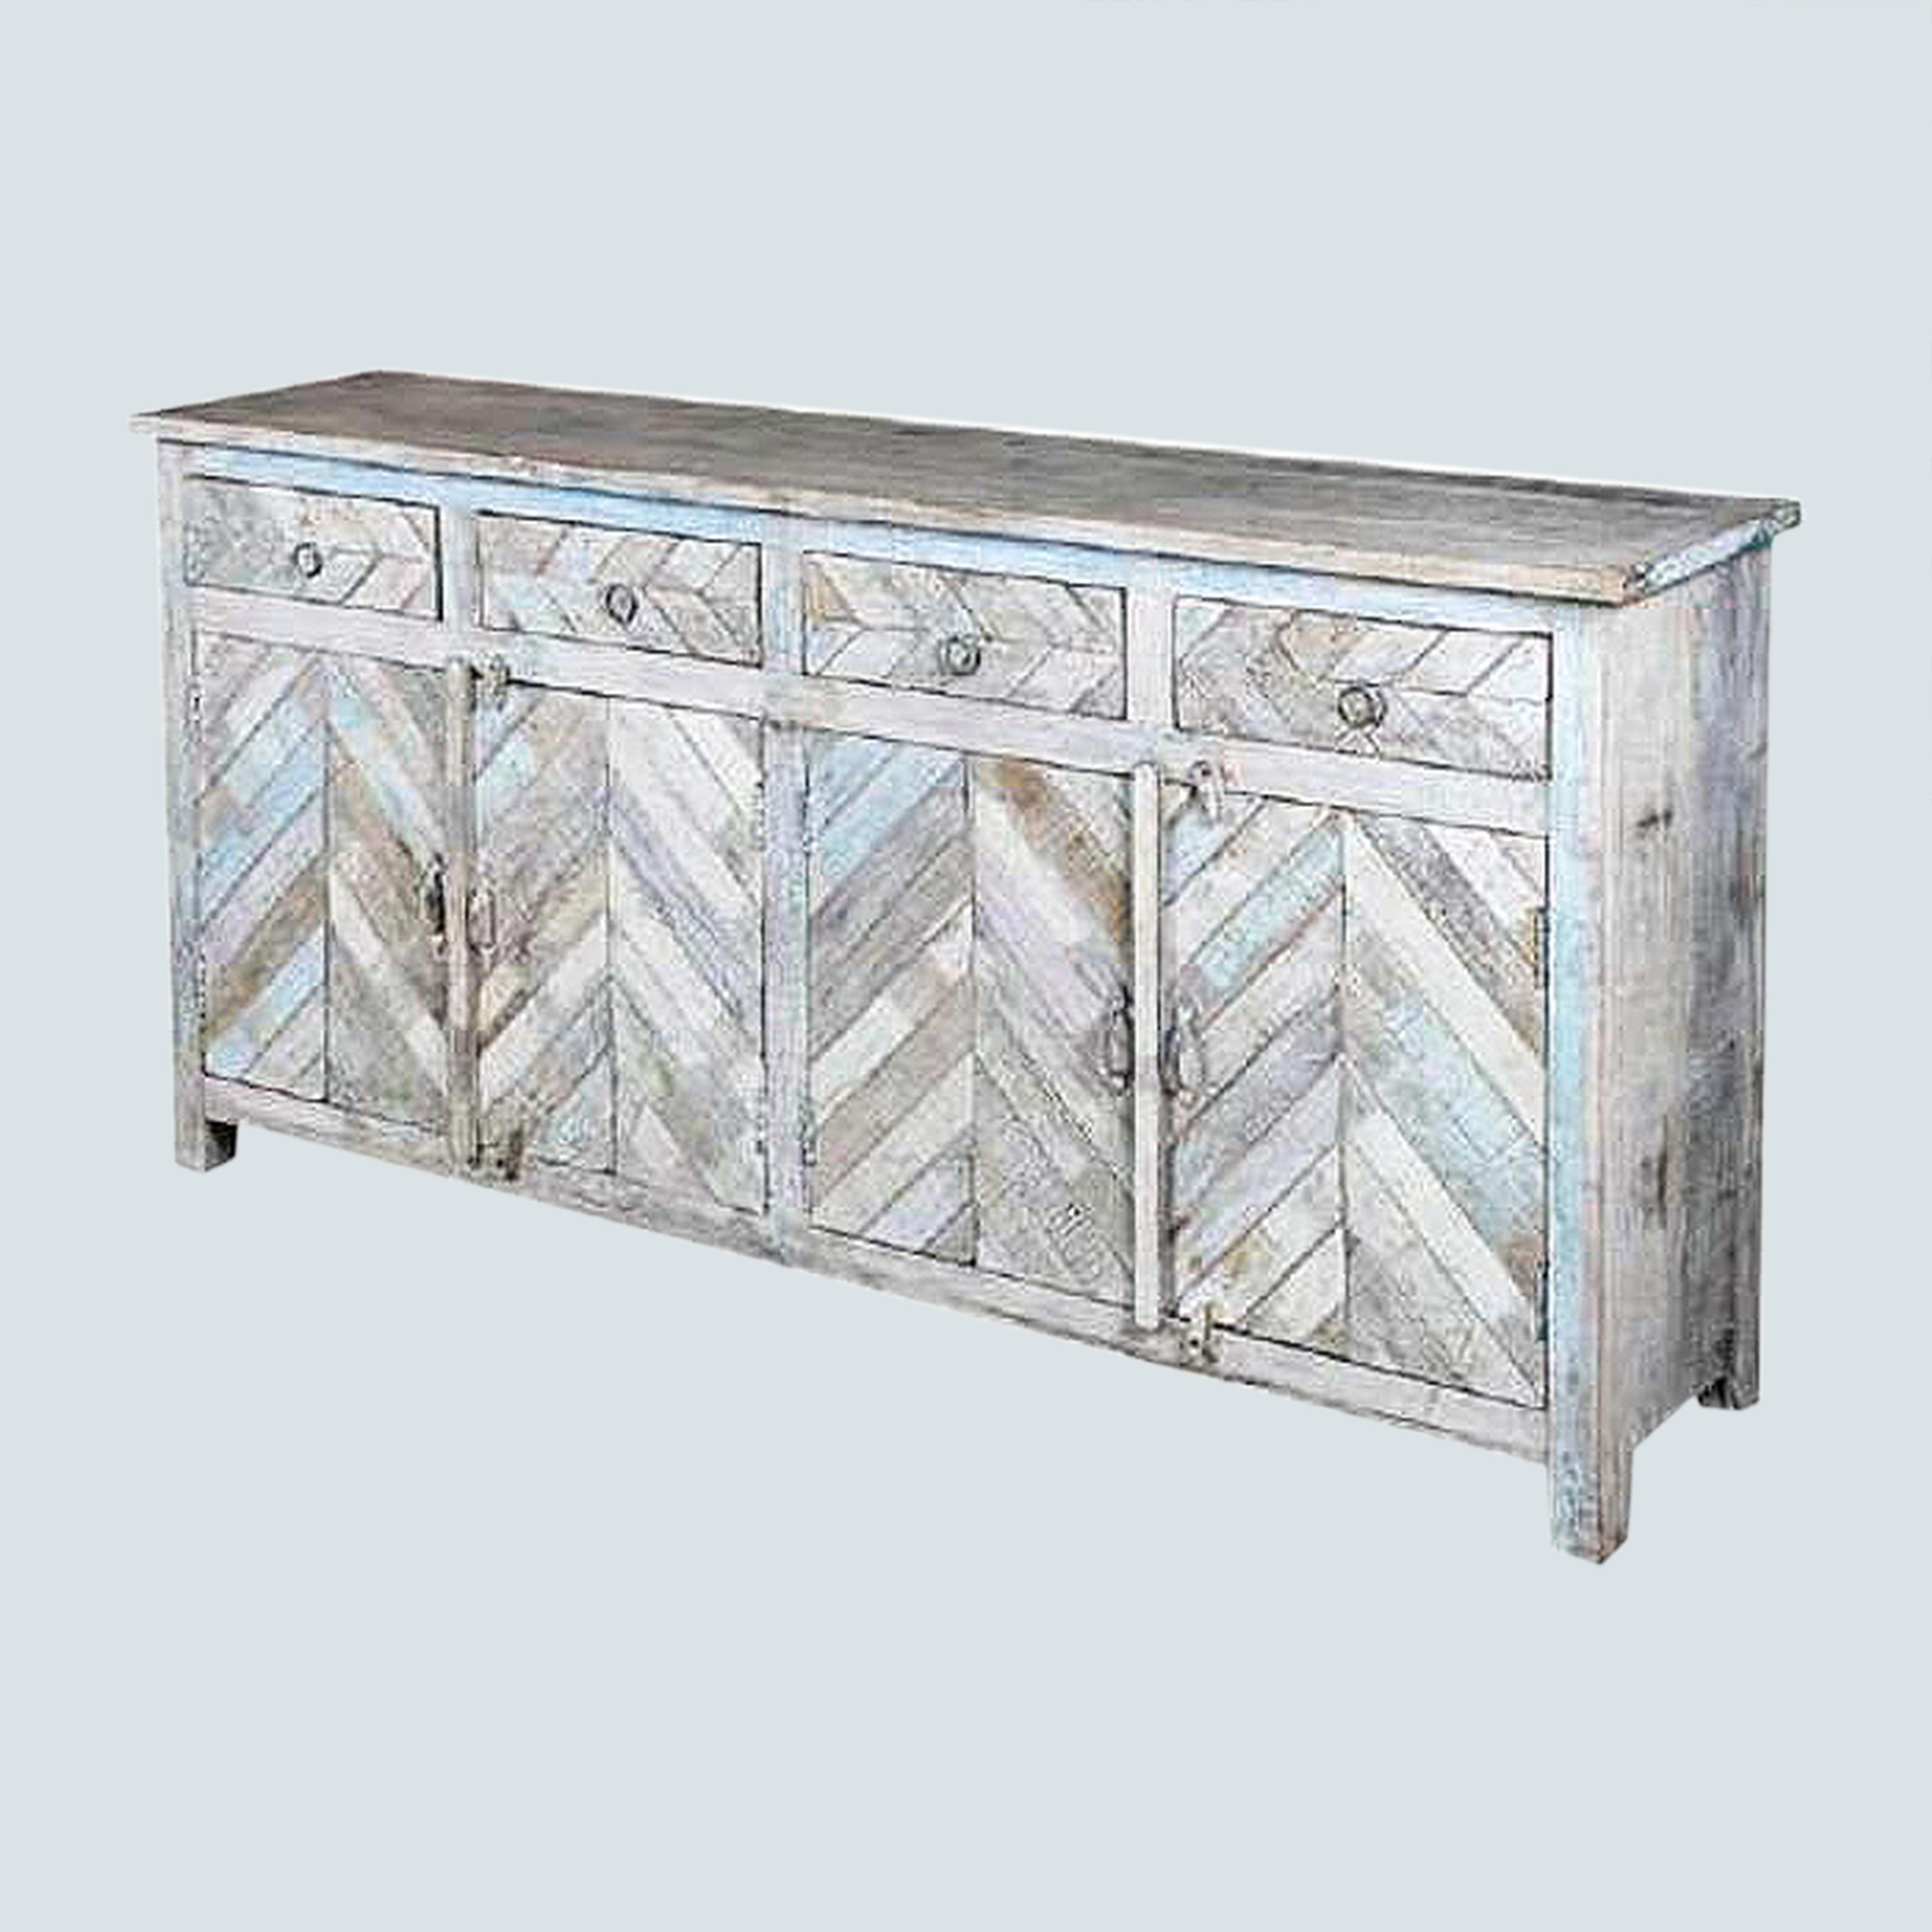 Sideboard Console Table, Accent cabinet Dresser, Chest of Drawers for storage, Cupboard, Sofa table